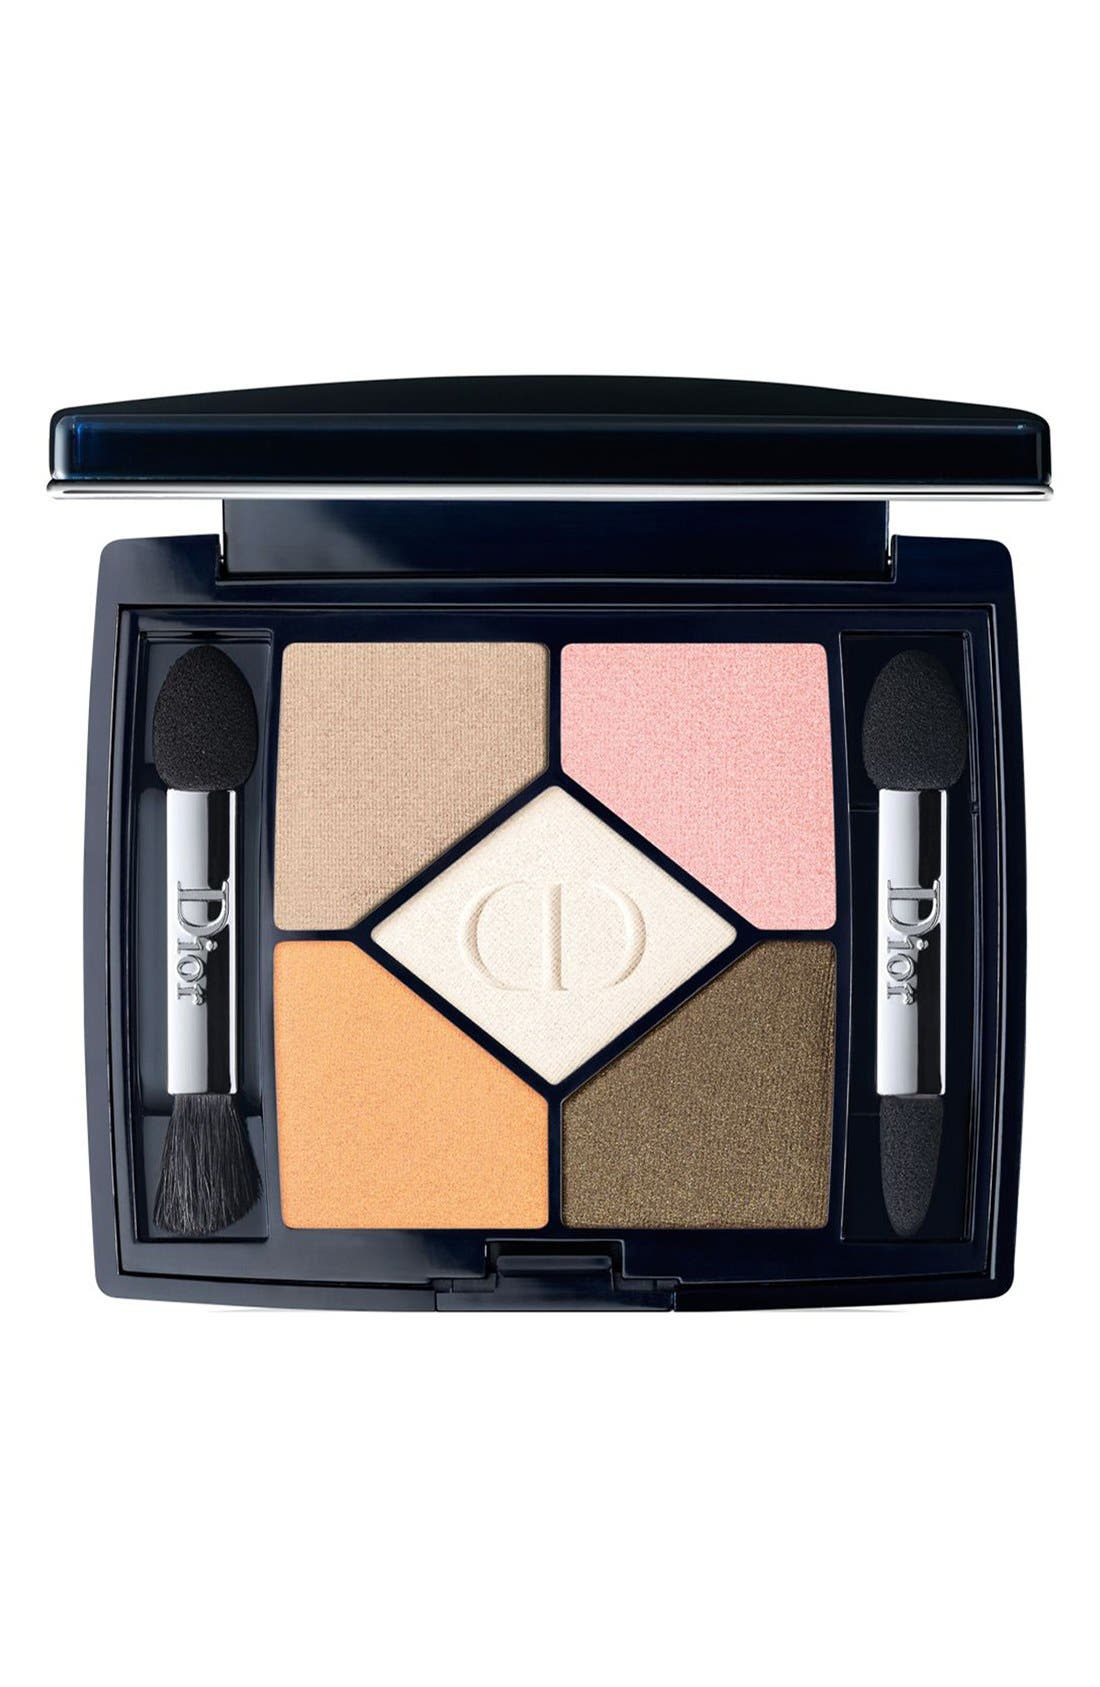 Dior '5 Couleurs - Polka Dots' Eyeshadow Palette (Limited Edition)